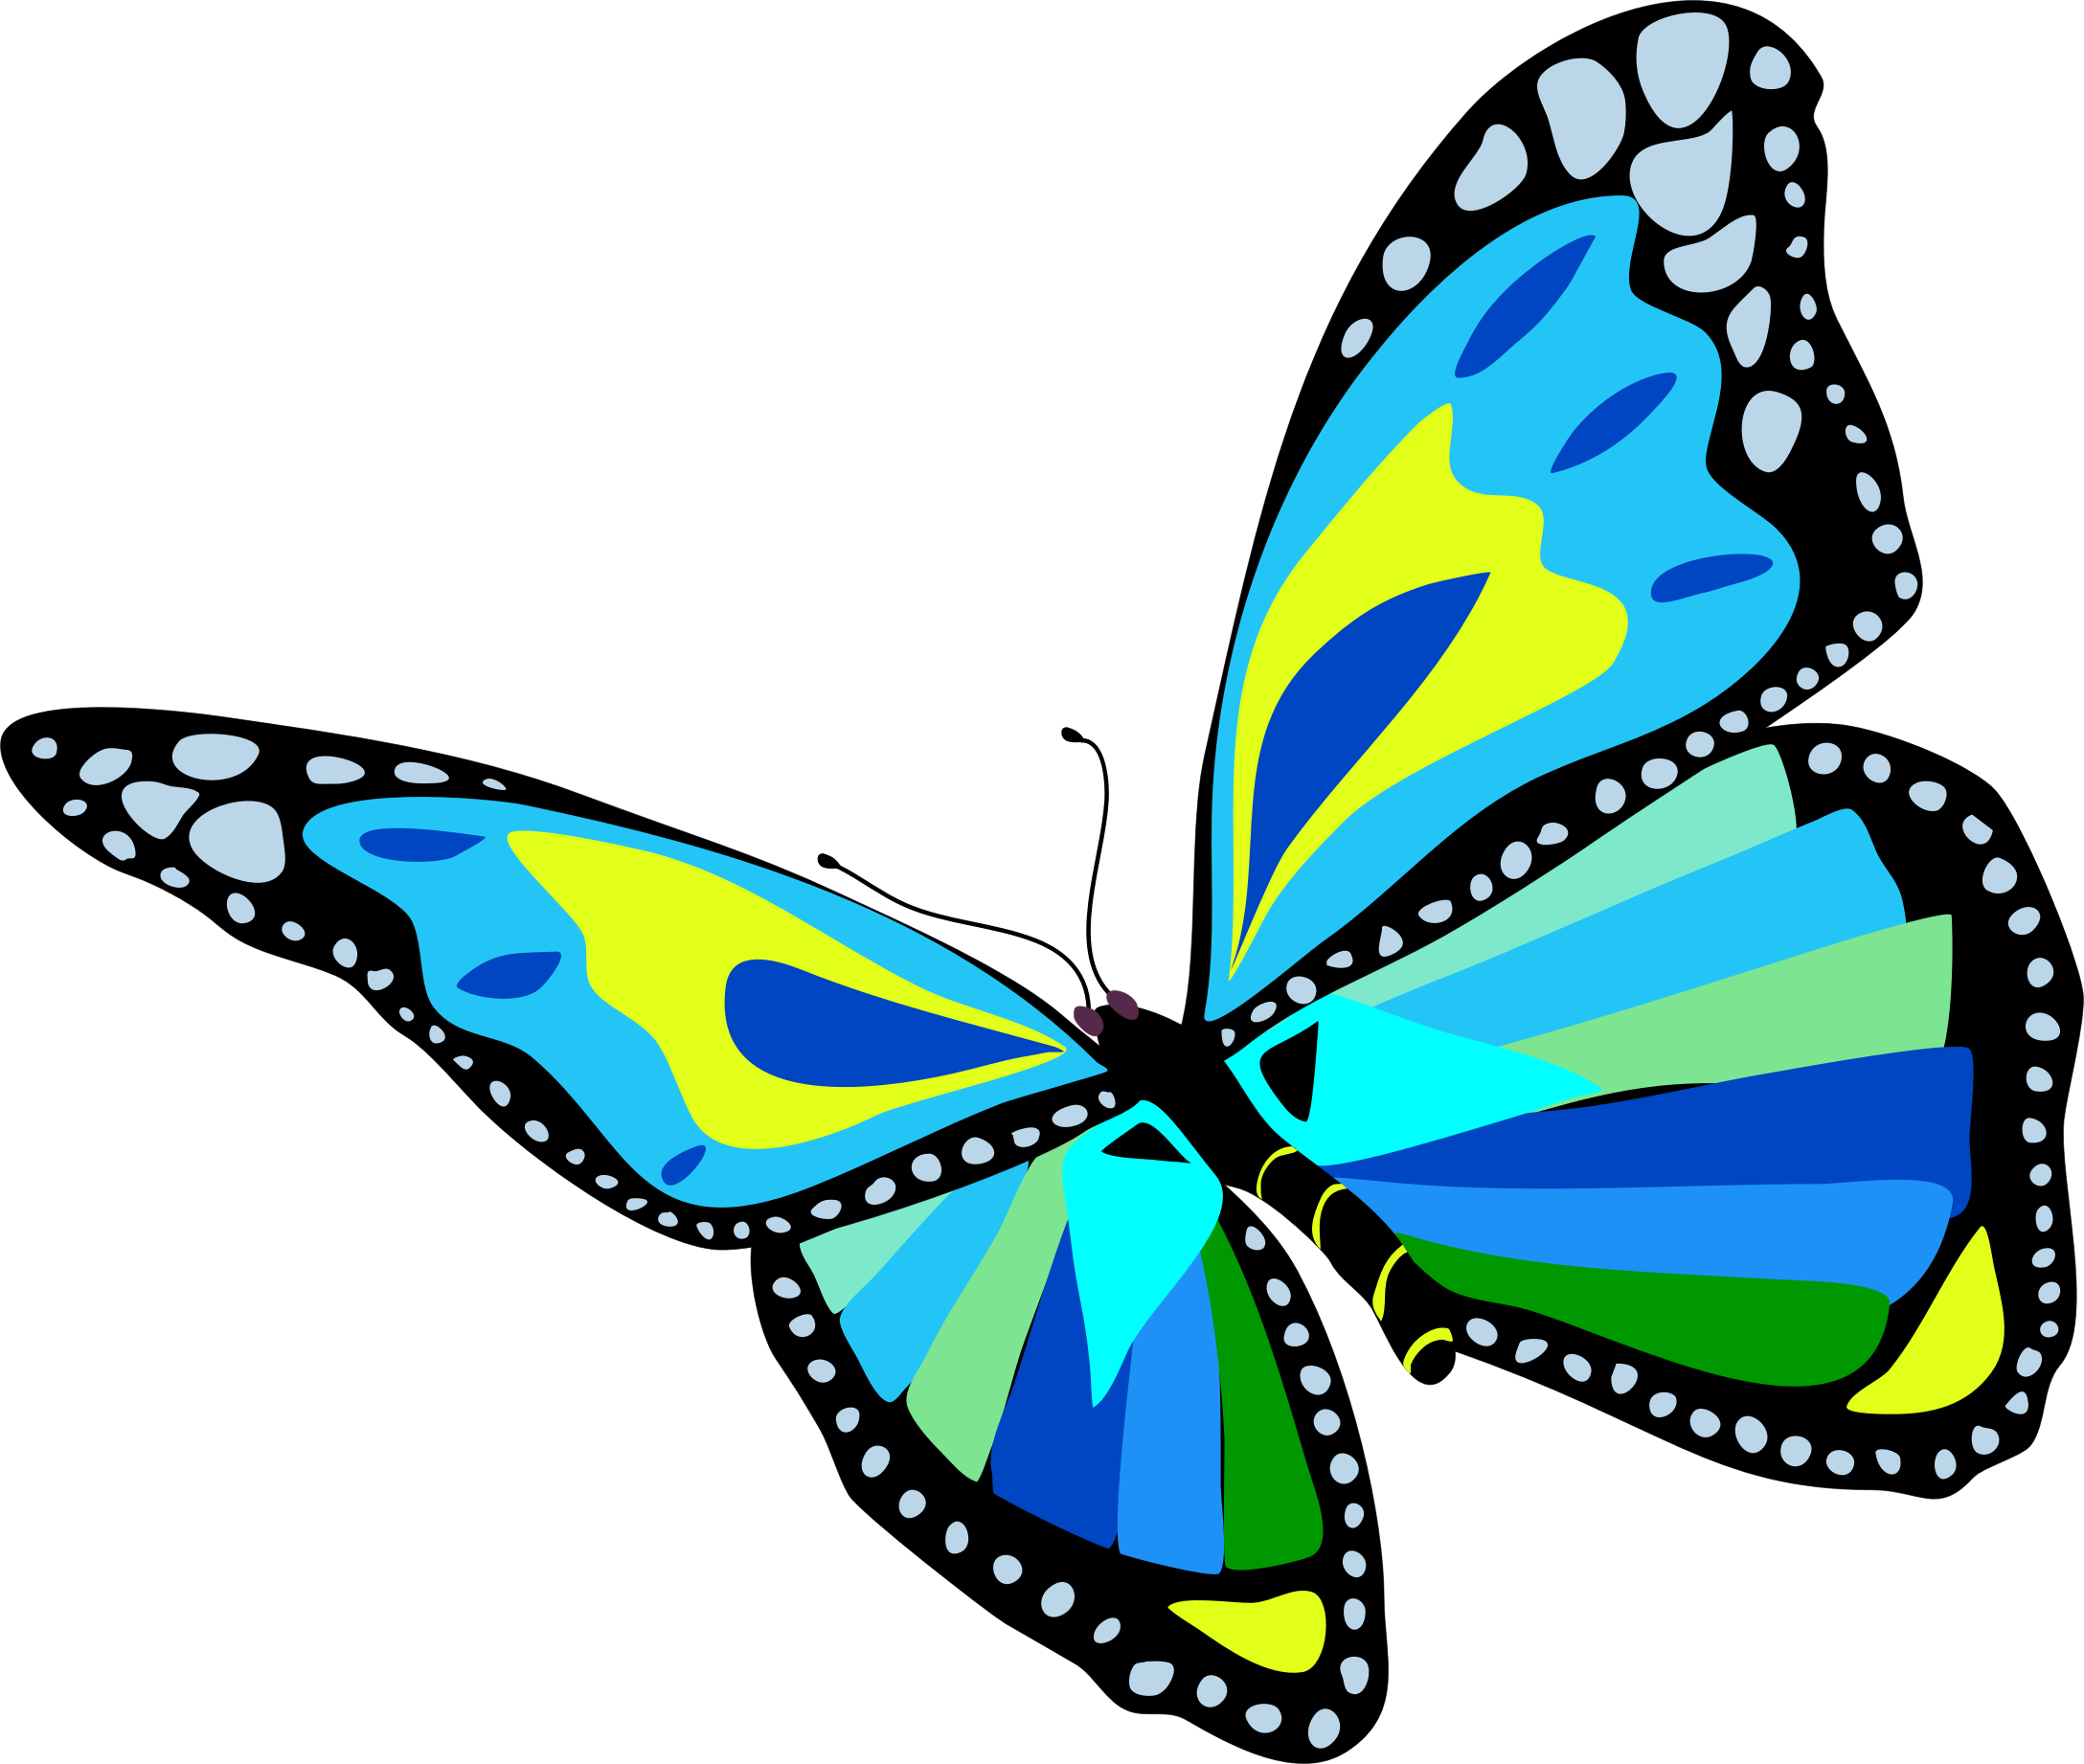 Flying butterfly clipart.